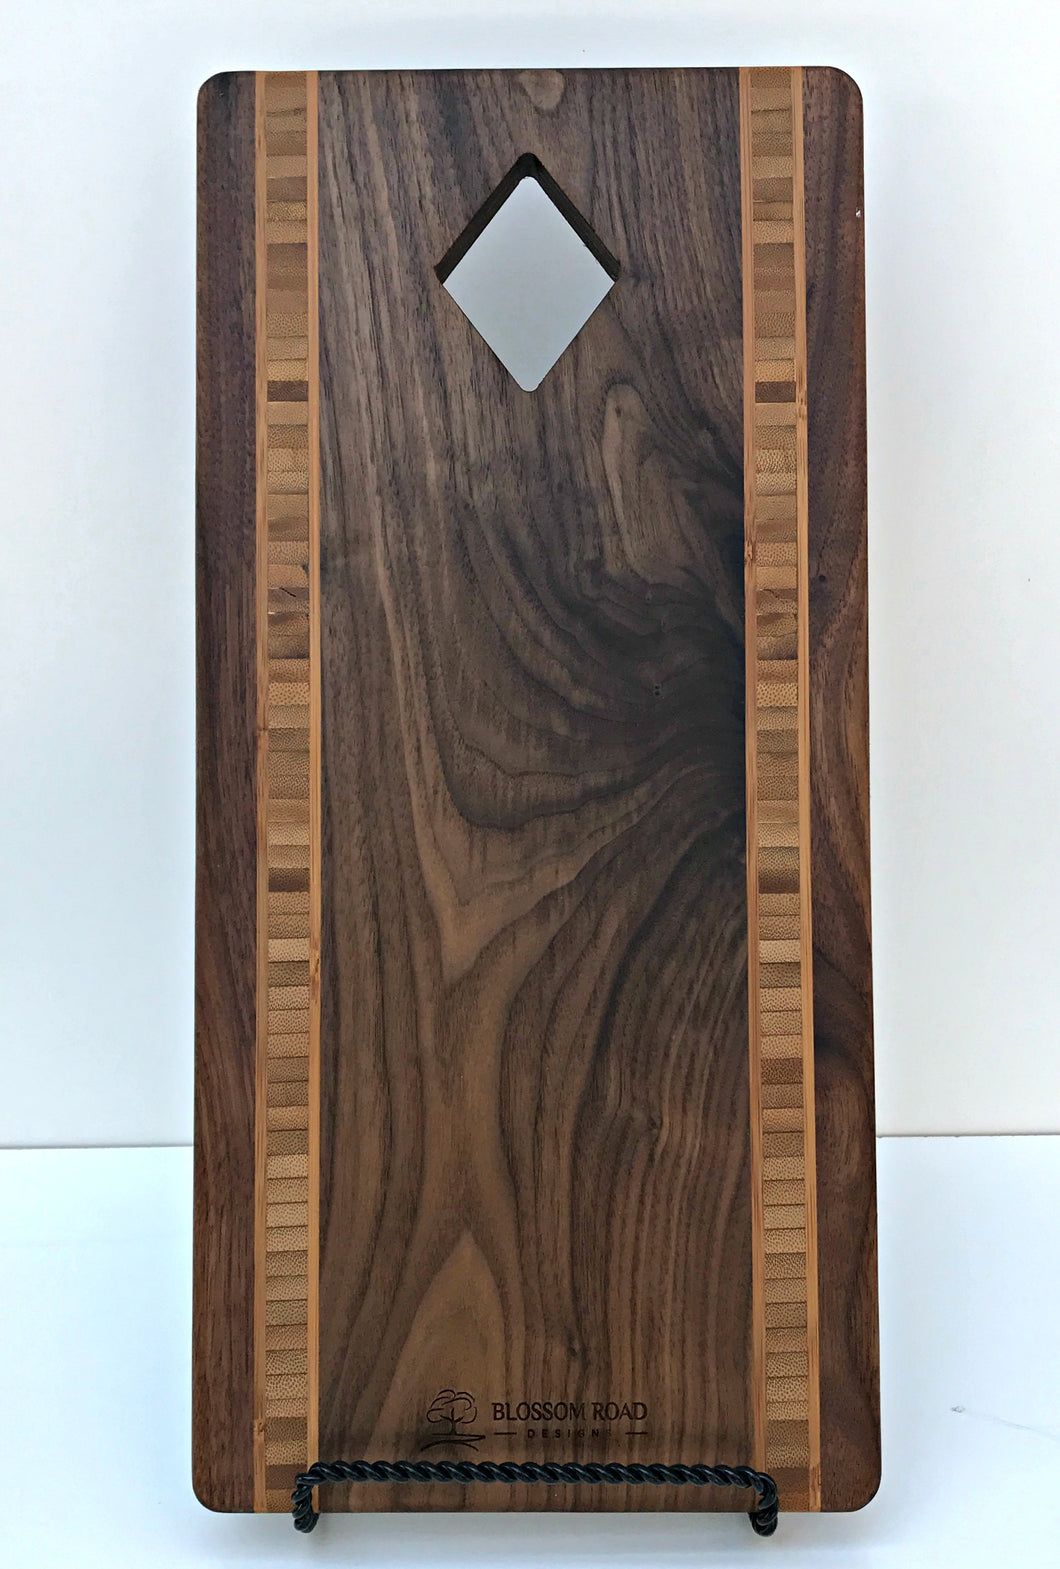 Diamond Artisan Serving Board with Bamboo Inlay - Blossom Road